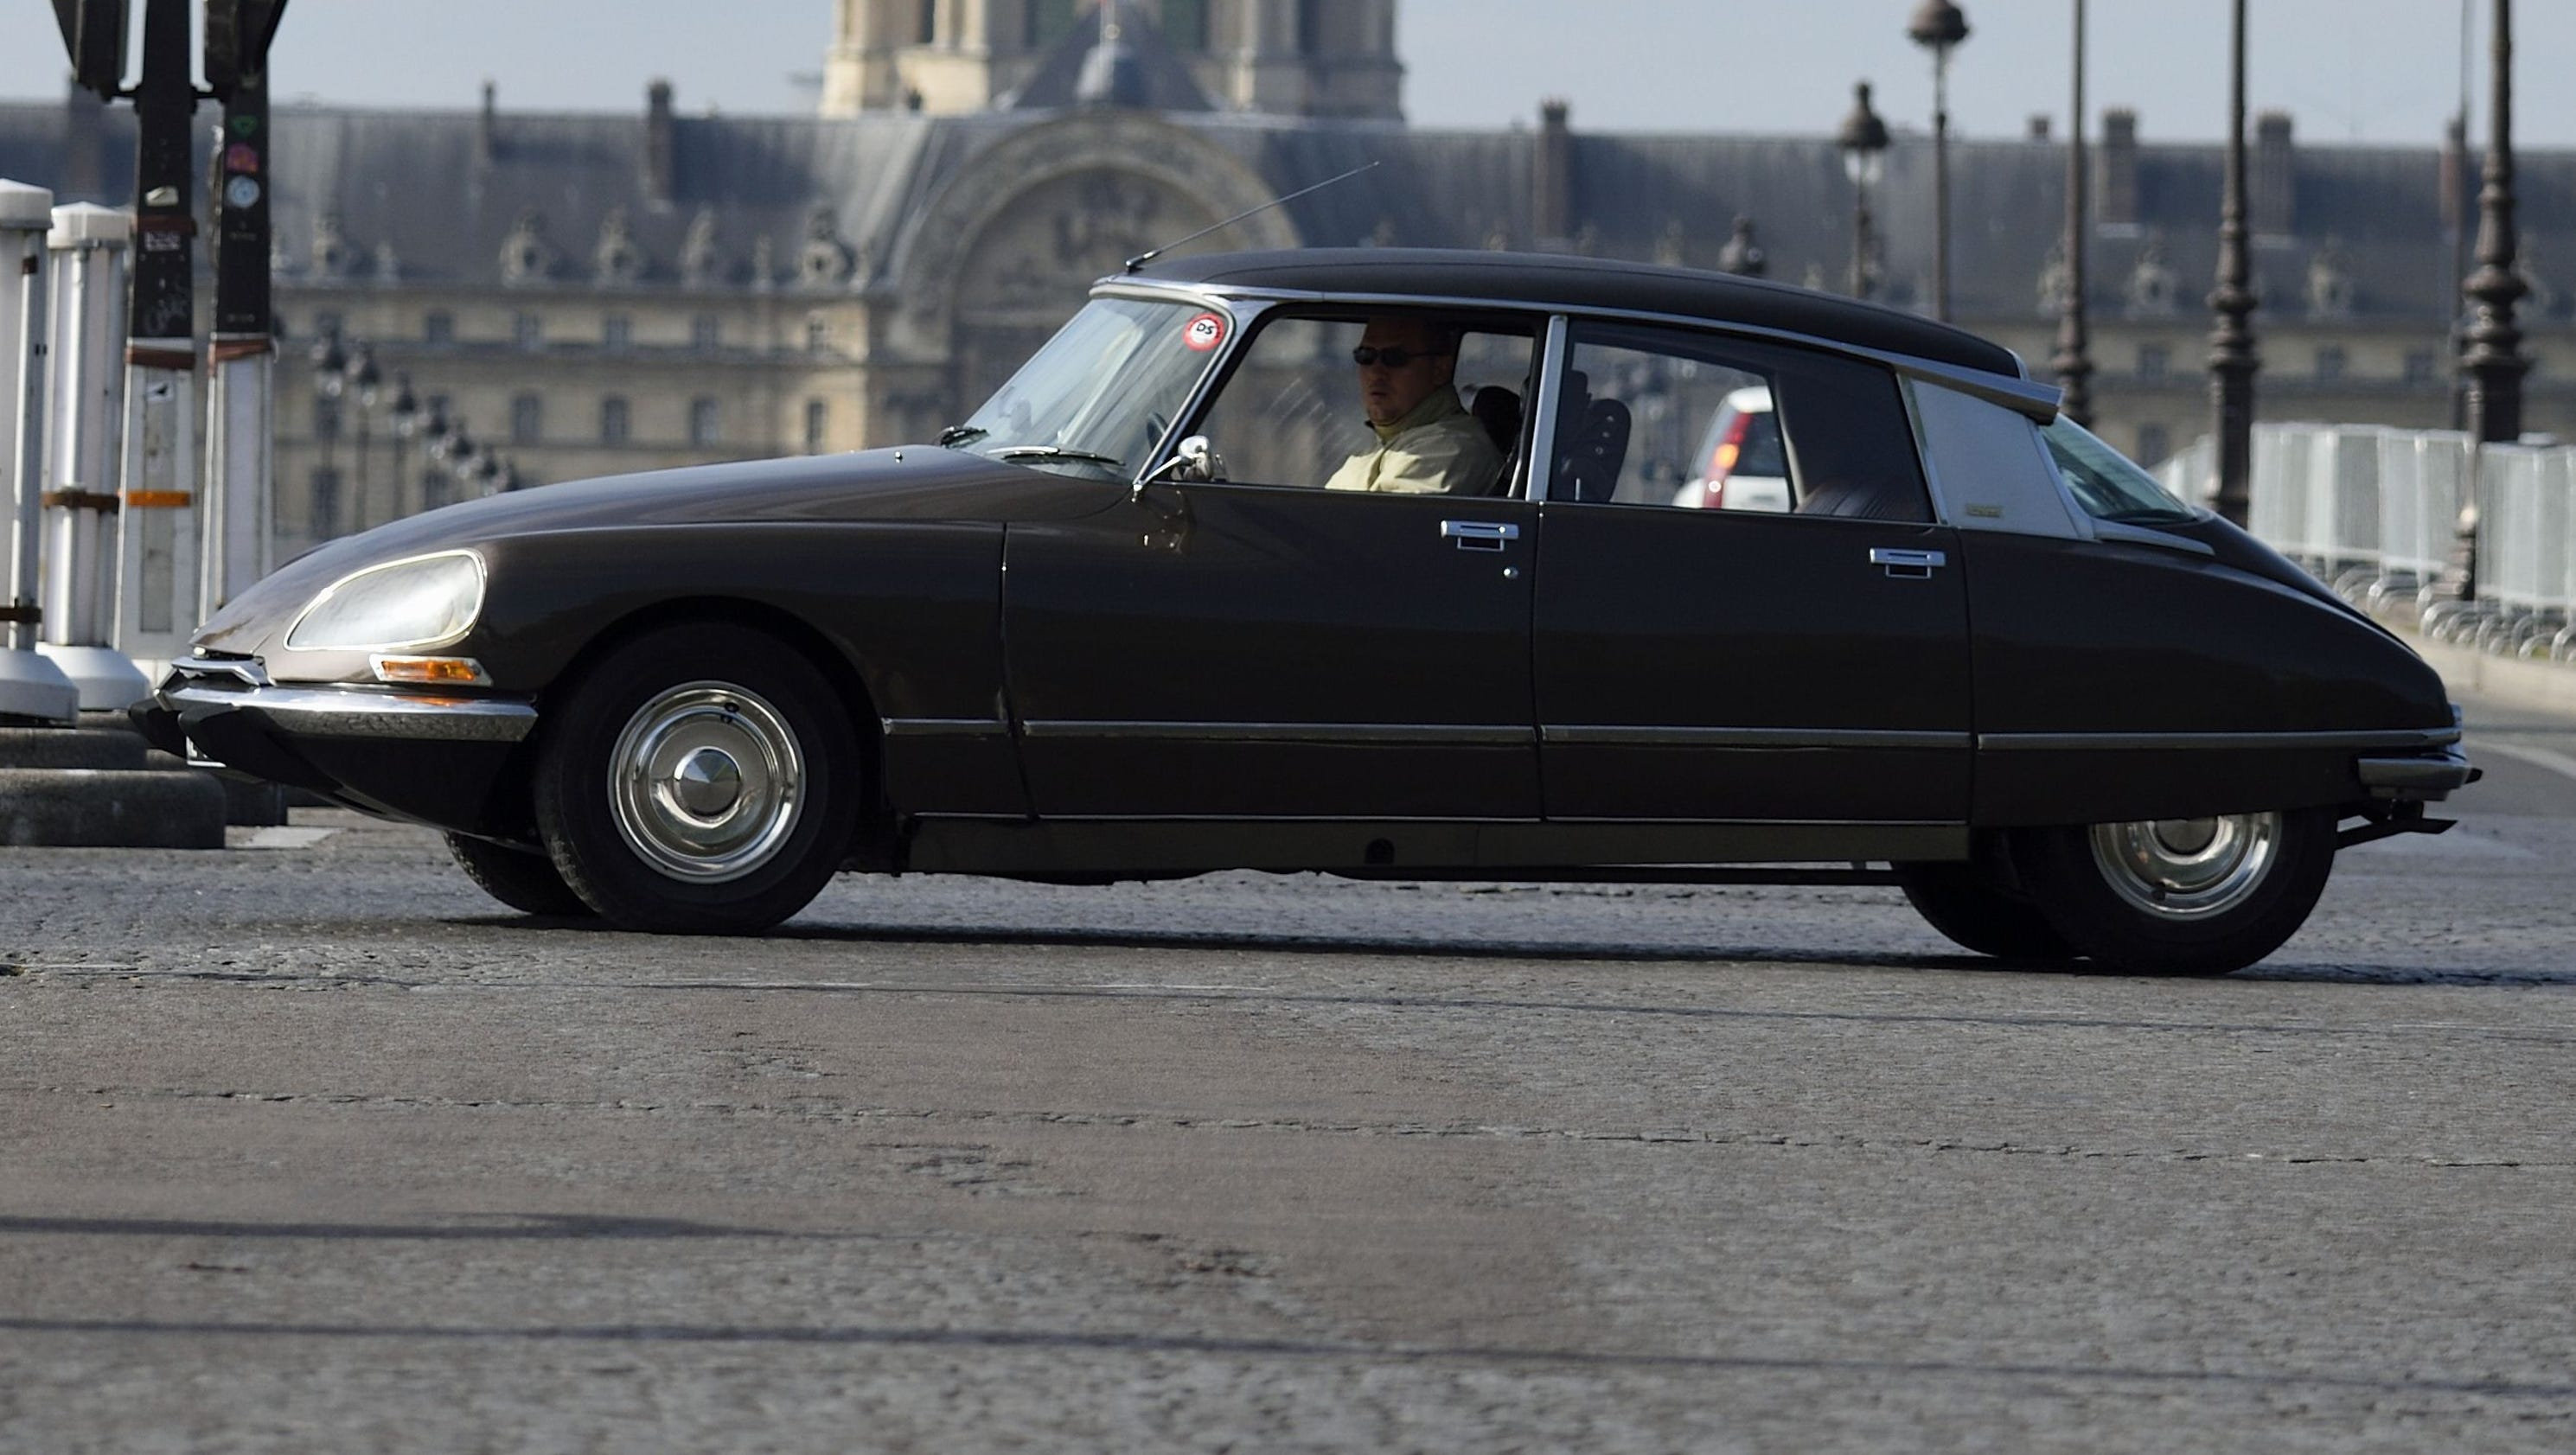 French Car: The Strangest French Car Is Now 60